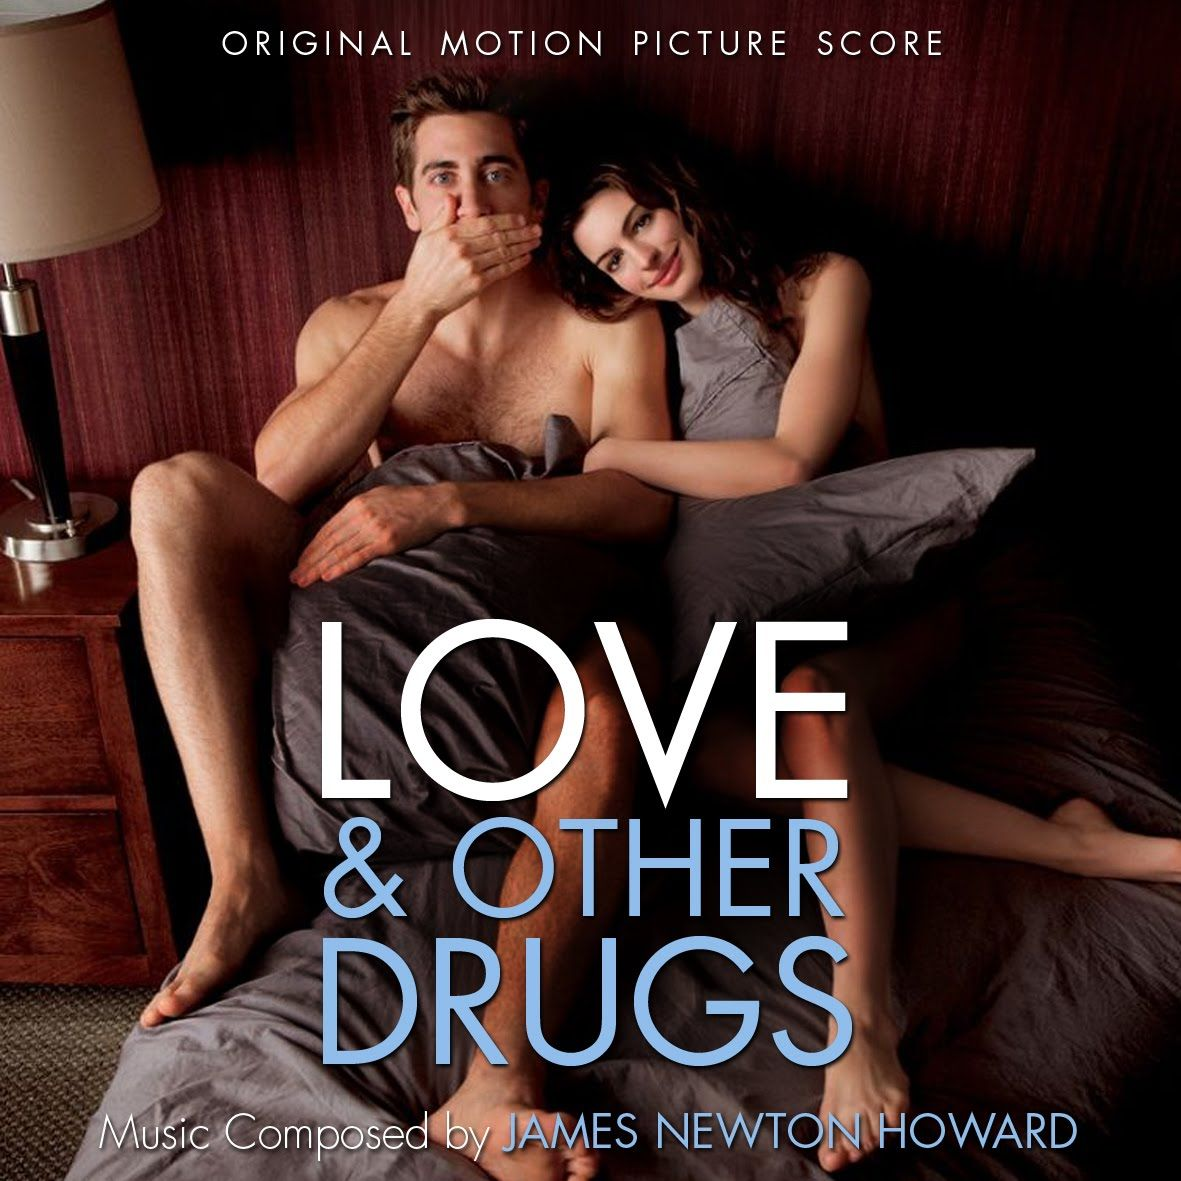 watch love & other drugs online